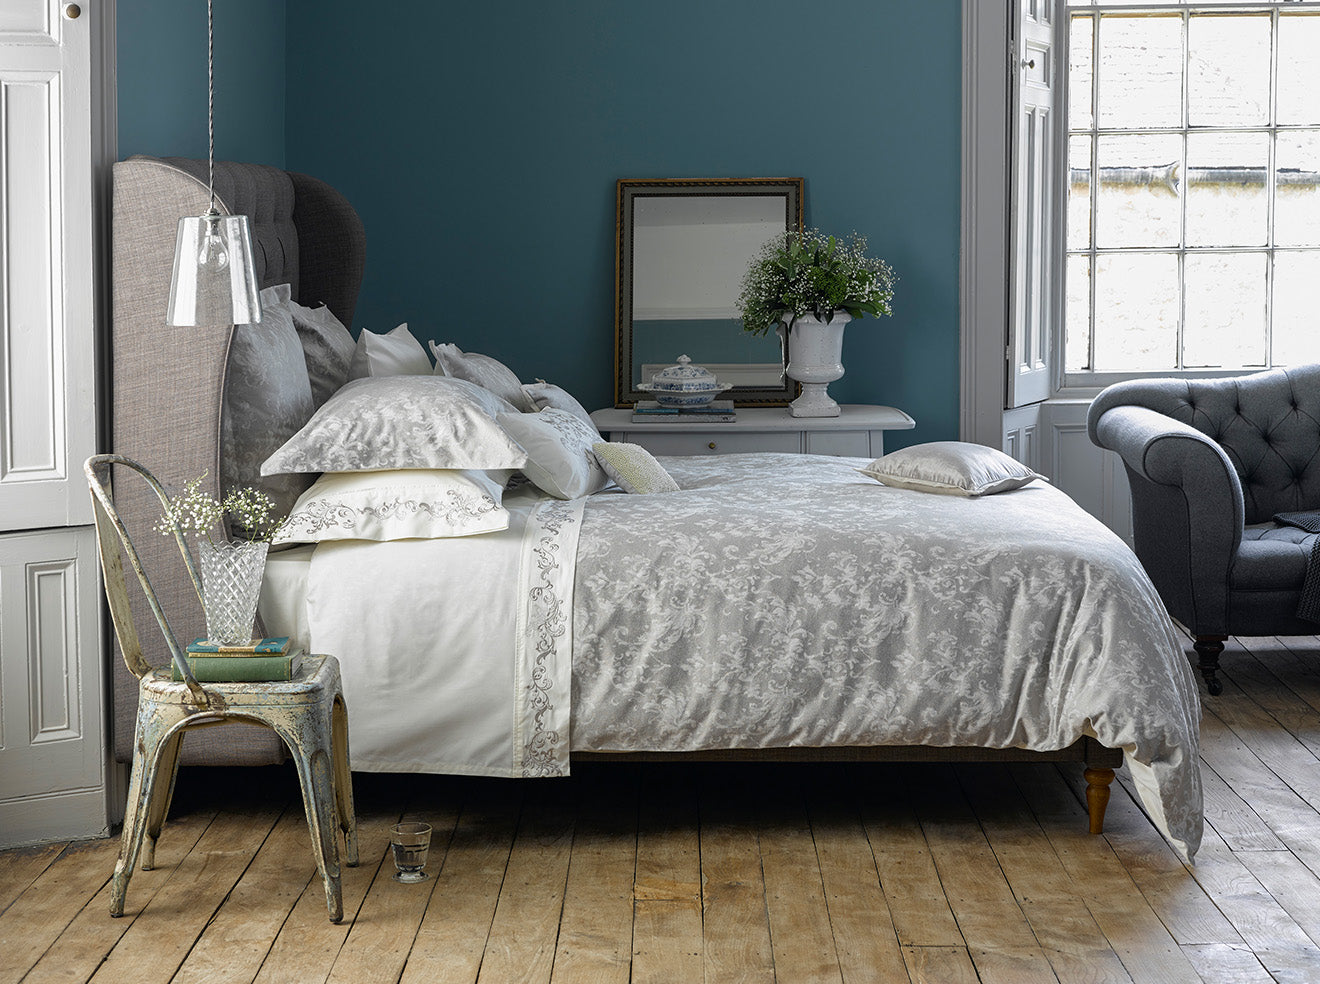 Silver rustic luxury bed linen from Christy